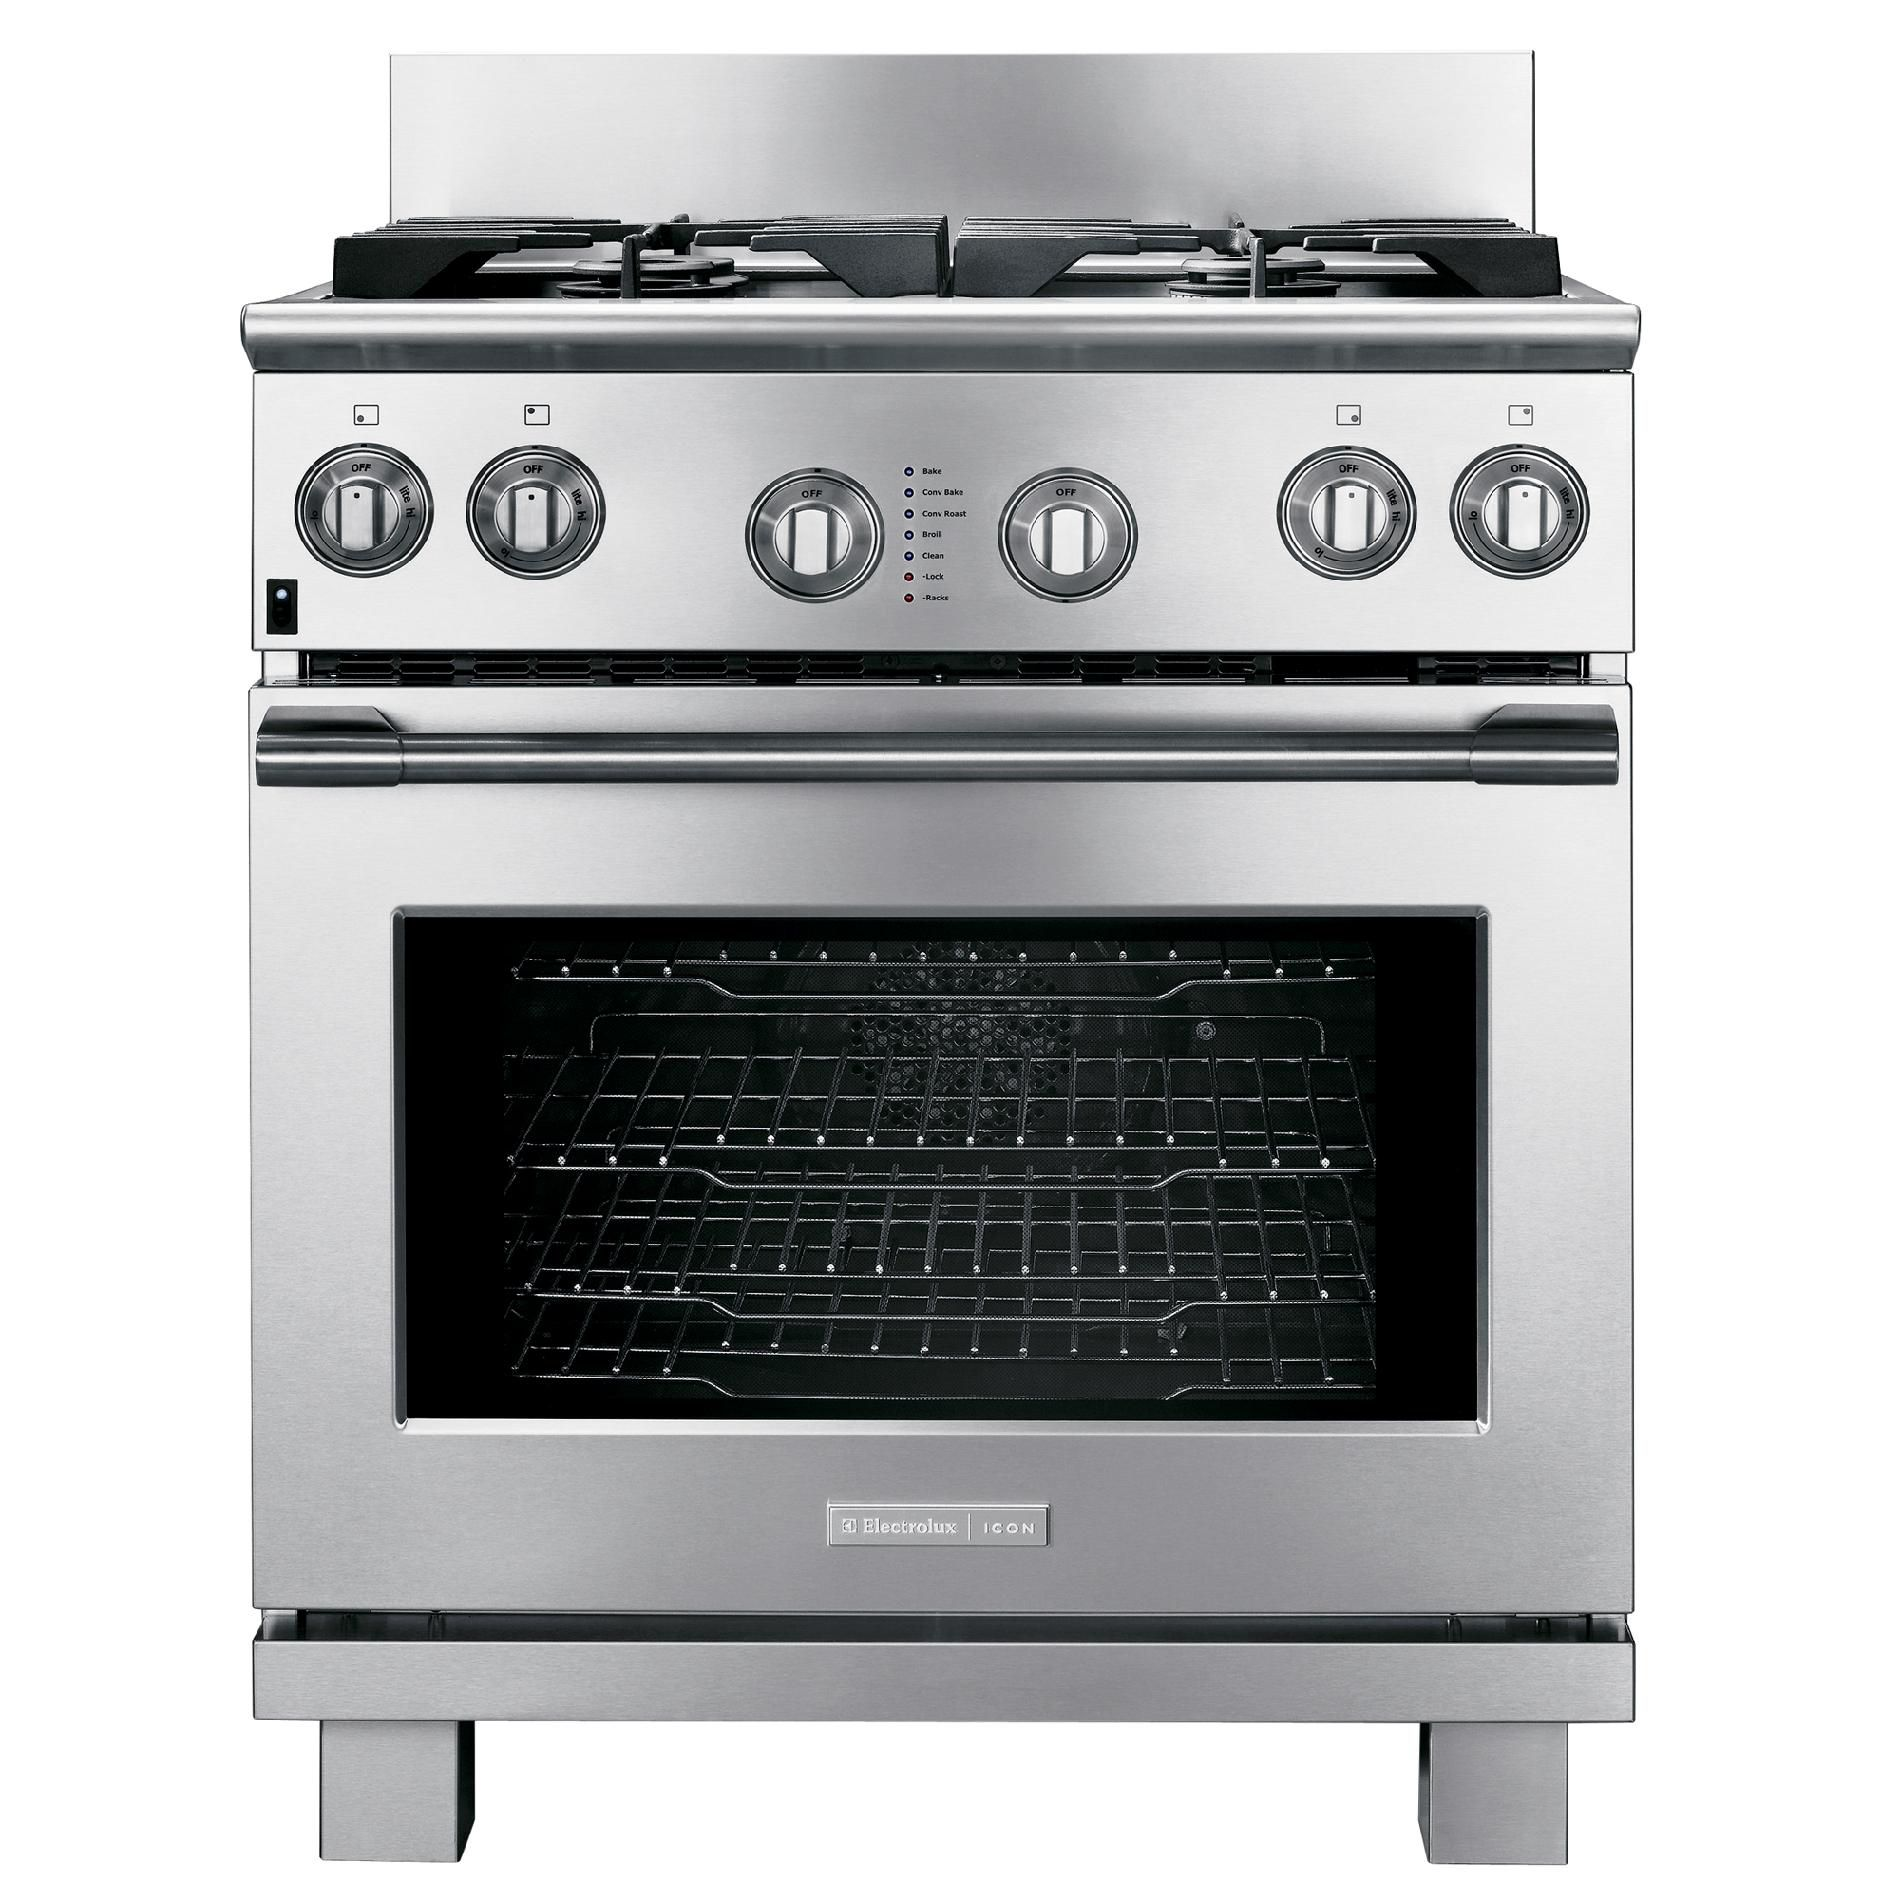 Why Dual Fuel Range Electrolux E30df74gps 30 Dual Fuel Range Stainless Steel